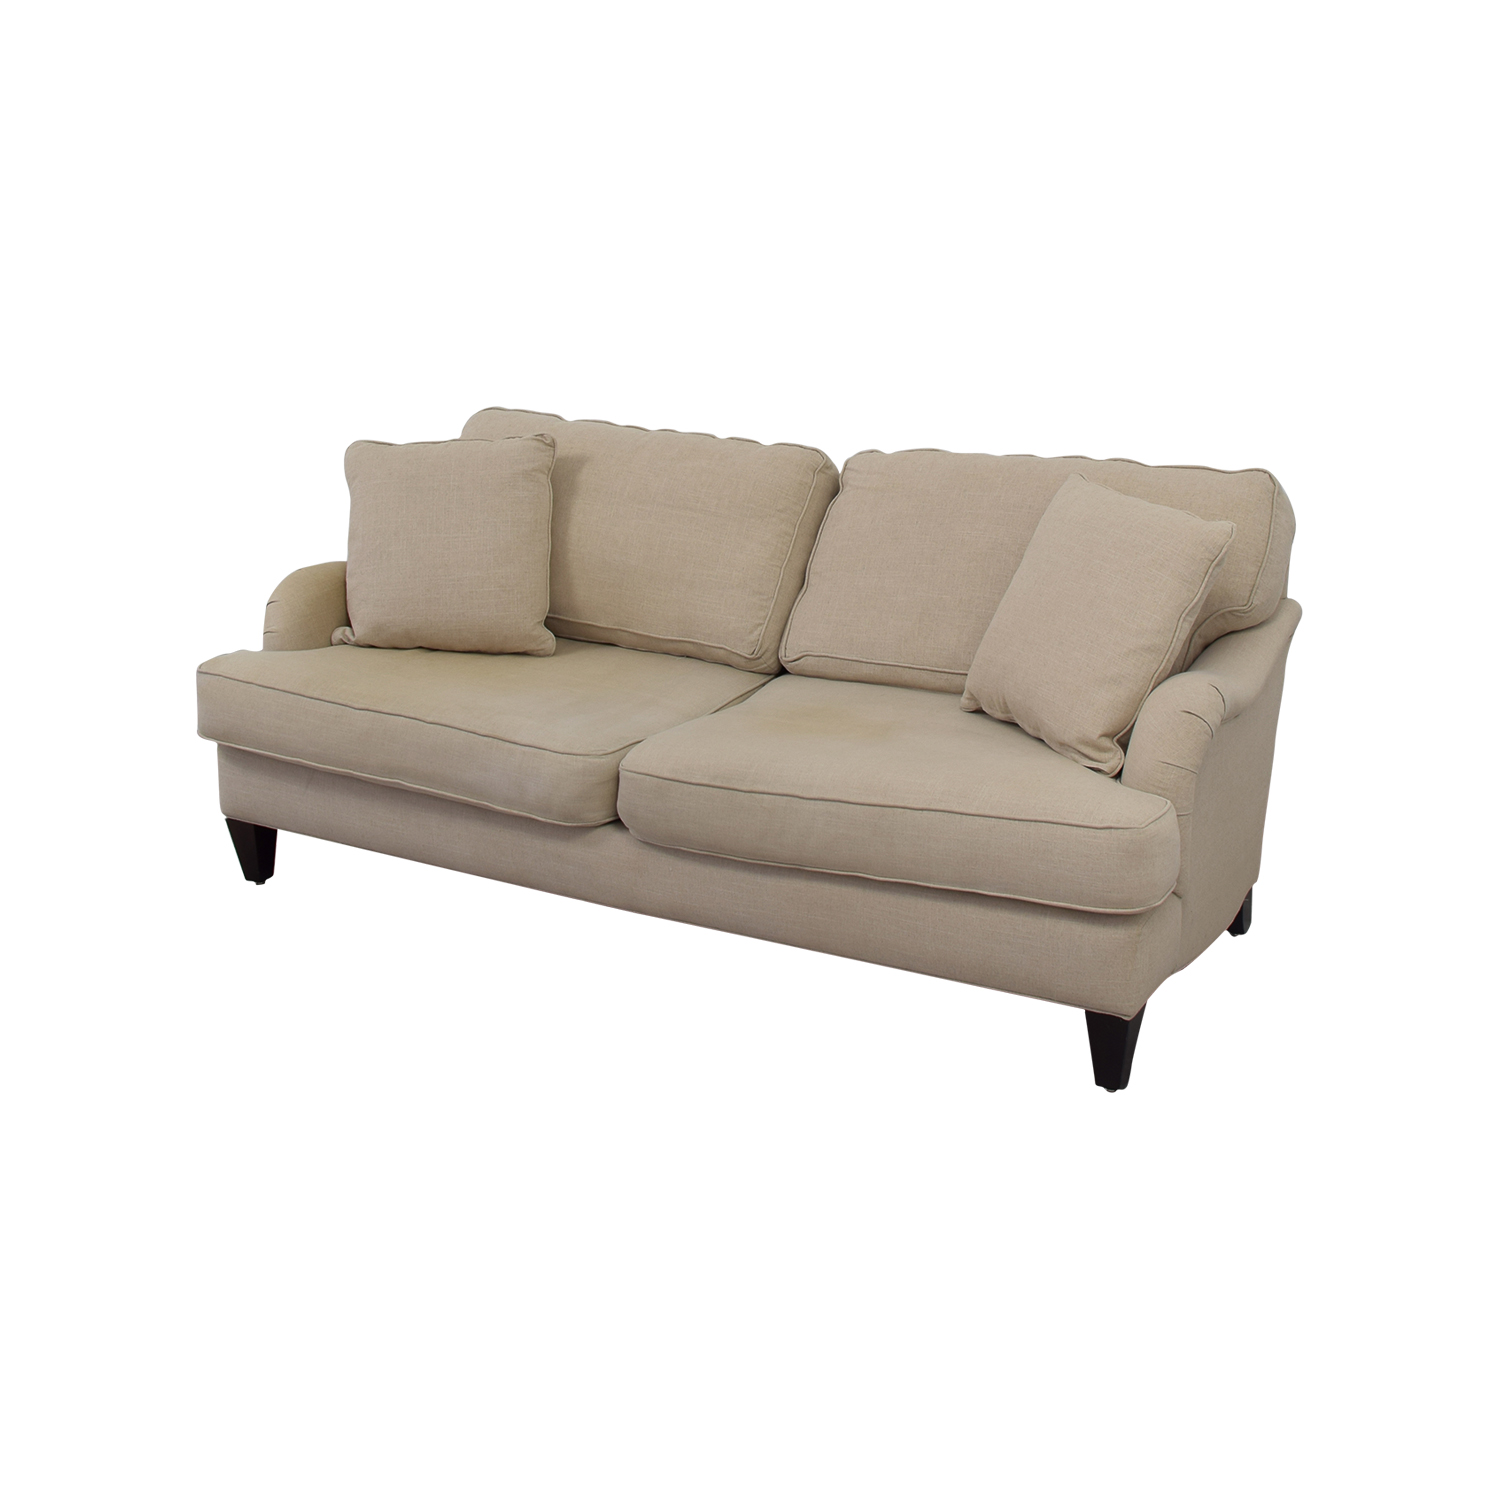 Eq3 stella sofa modern furniture canadian made for urban Home decorators collection sofa